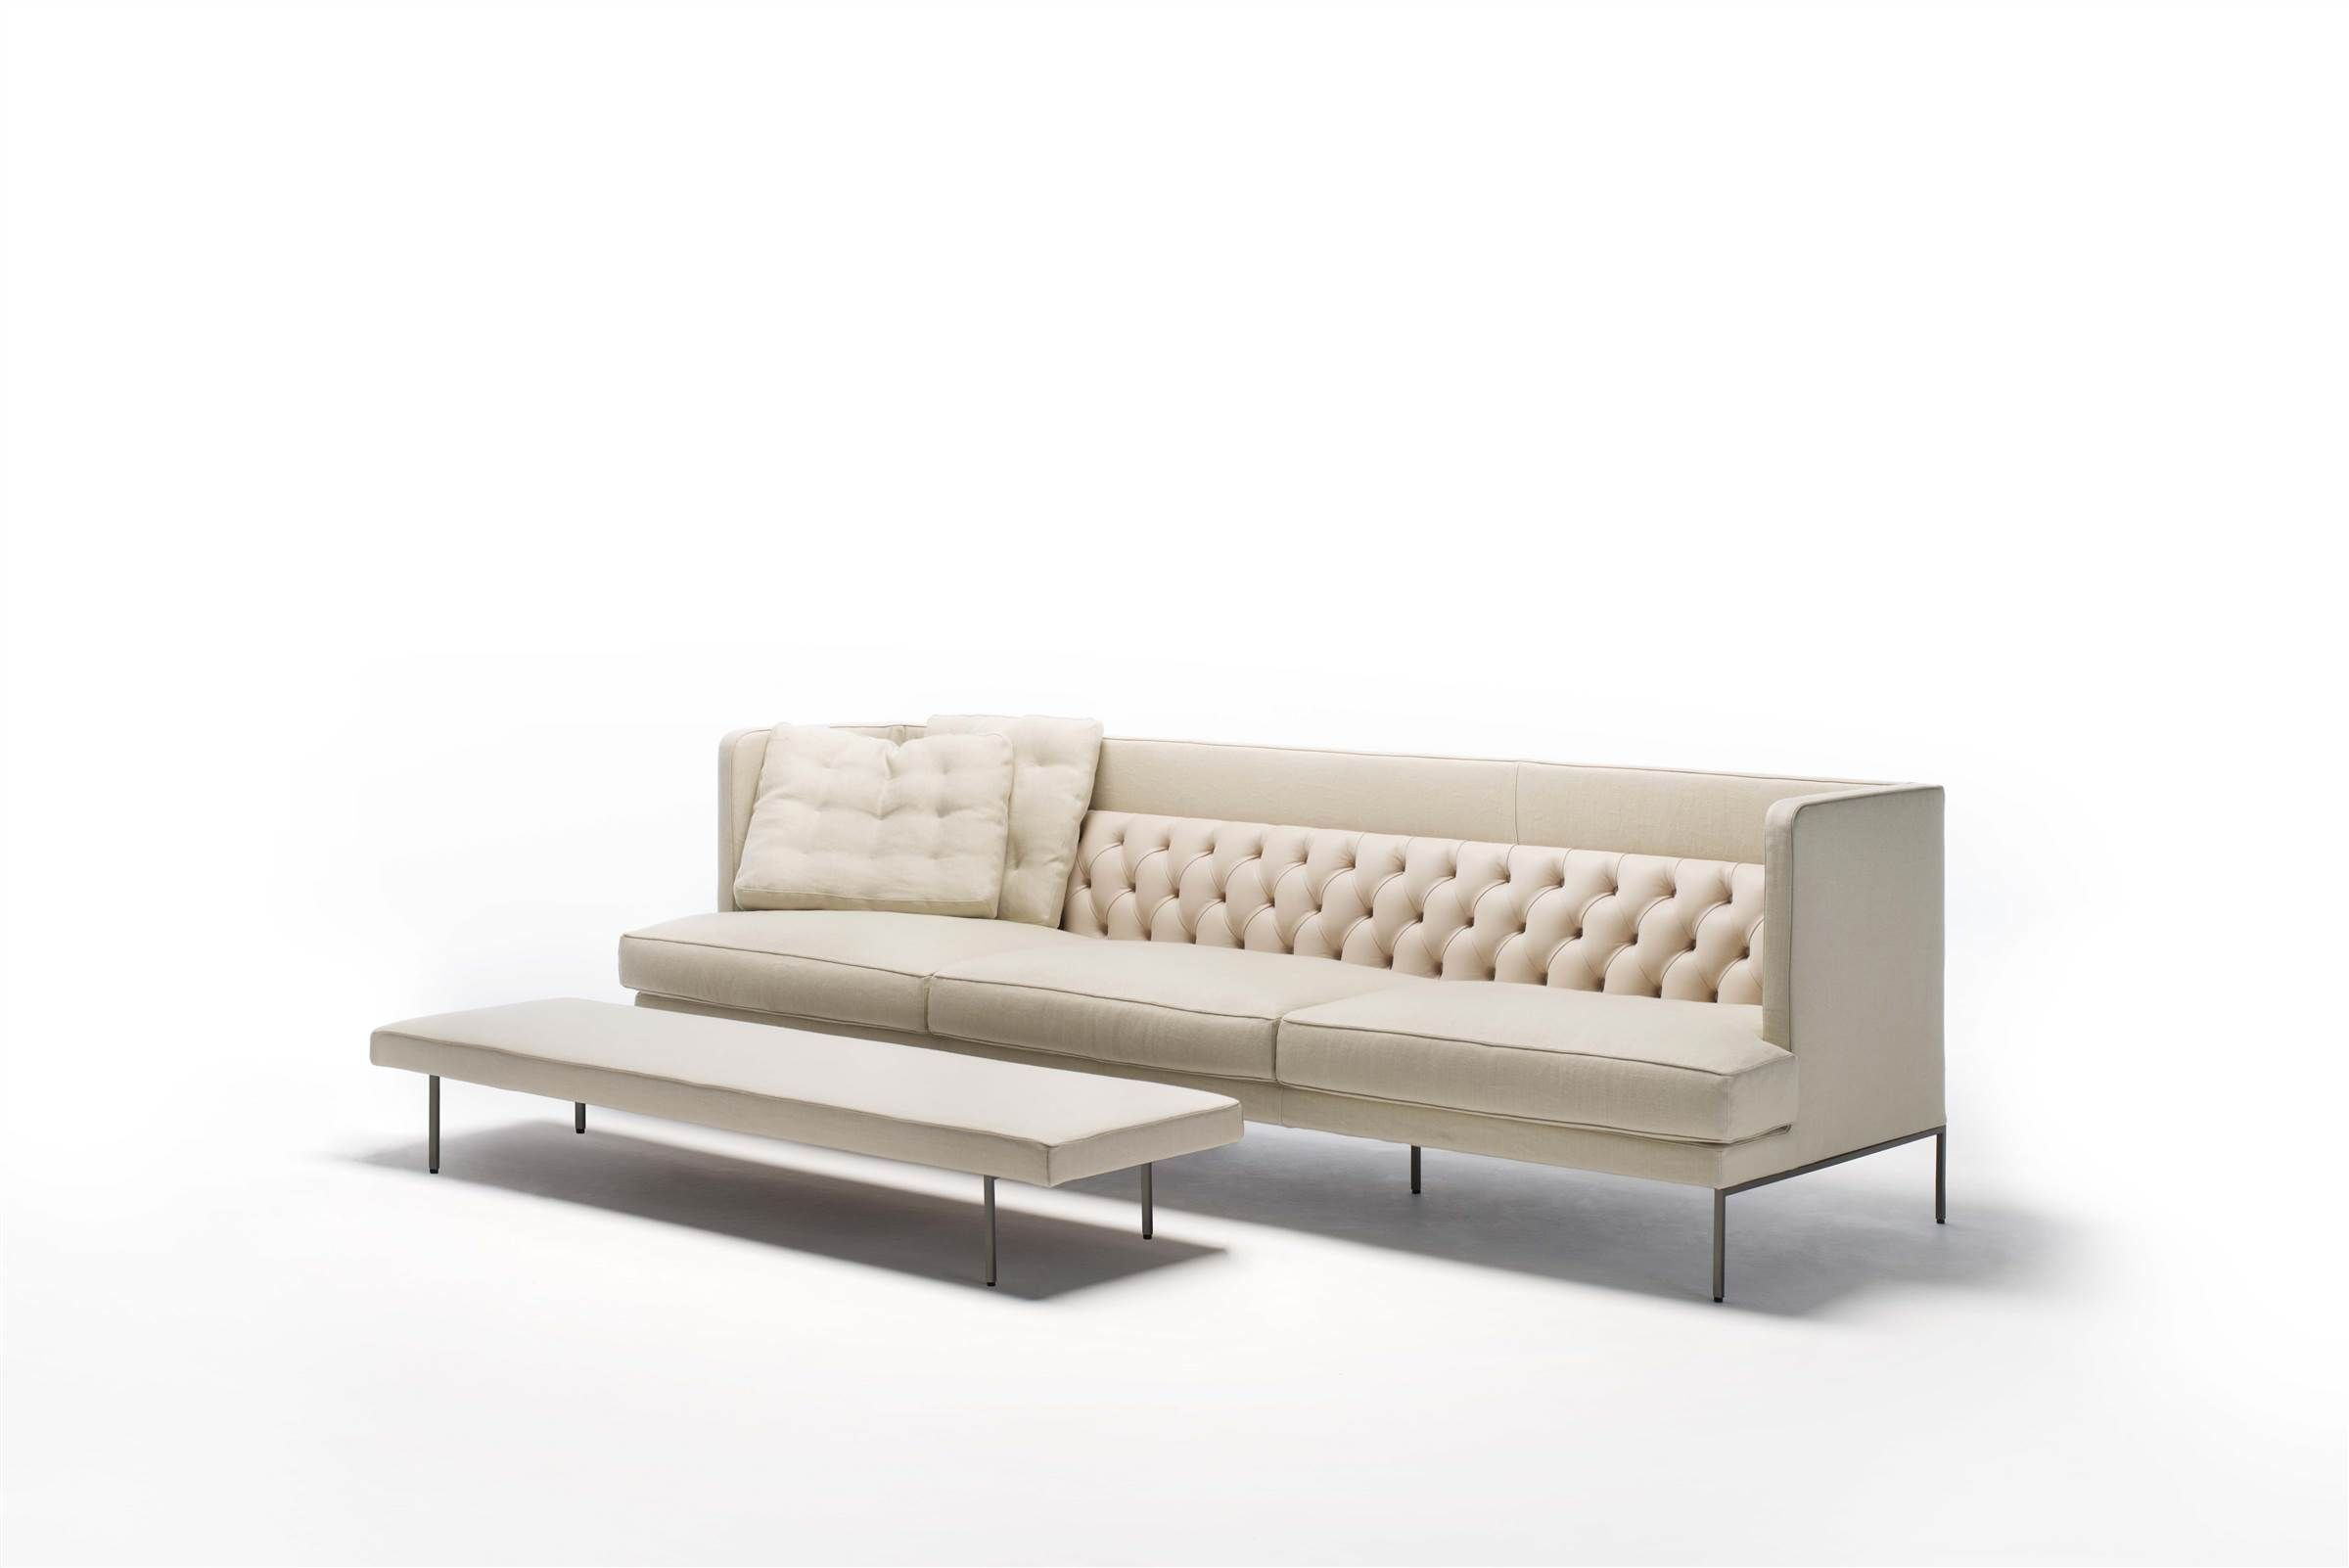 the new lipp sofa from living divani designed piero lissoni a rh pinterest com